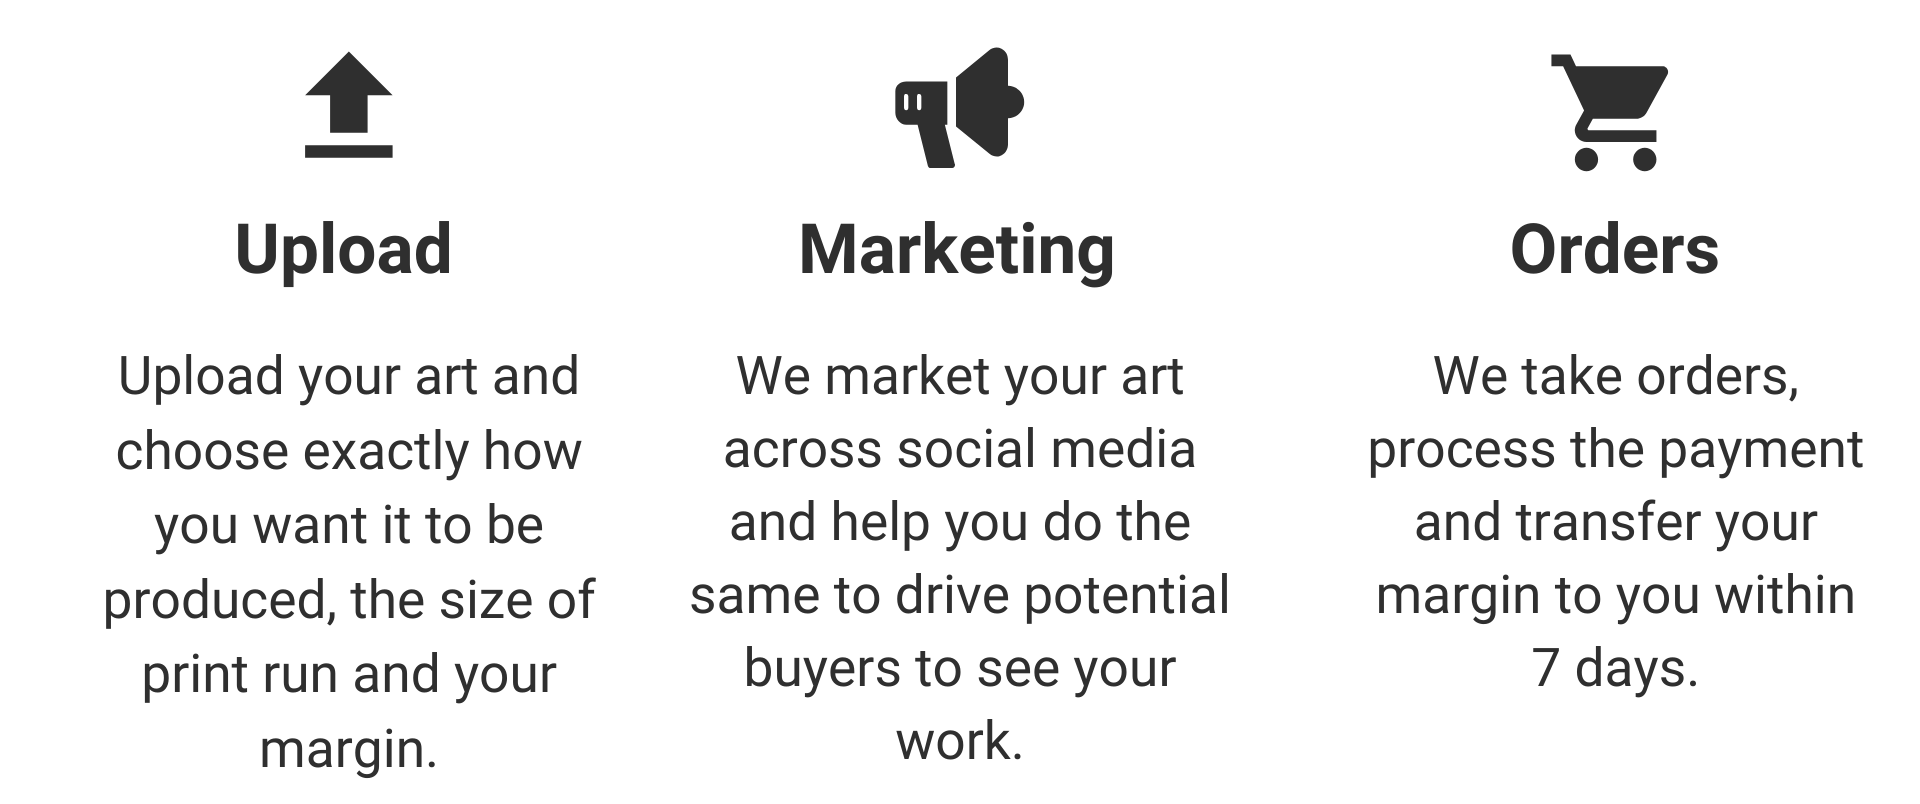 UploadMarketingOrders Upload your art and choose exactly how you want it to be produced, the size of print run and your margin. We market your art across social media and help you do the same to drive potential buyers to see your work. We take orders, process the payment and transfer your margin to you within 7 days.